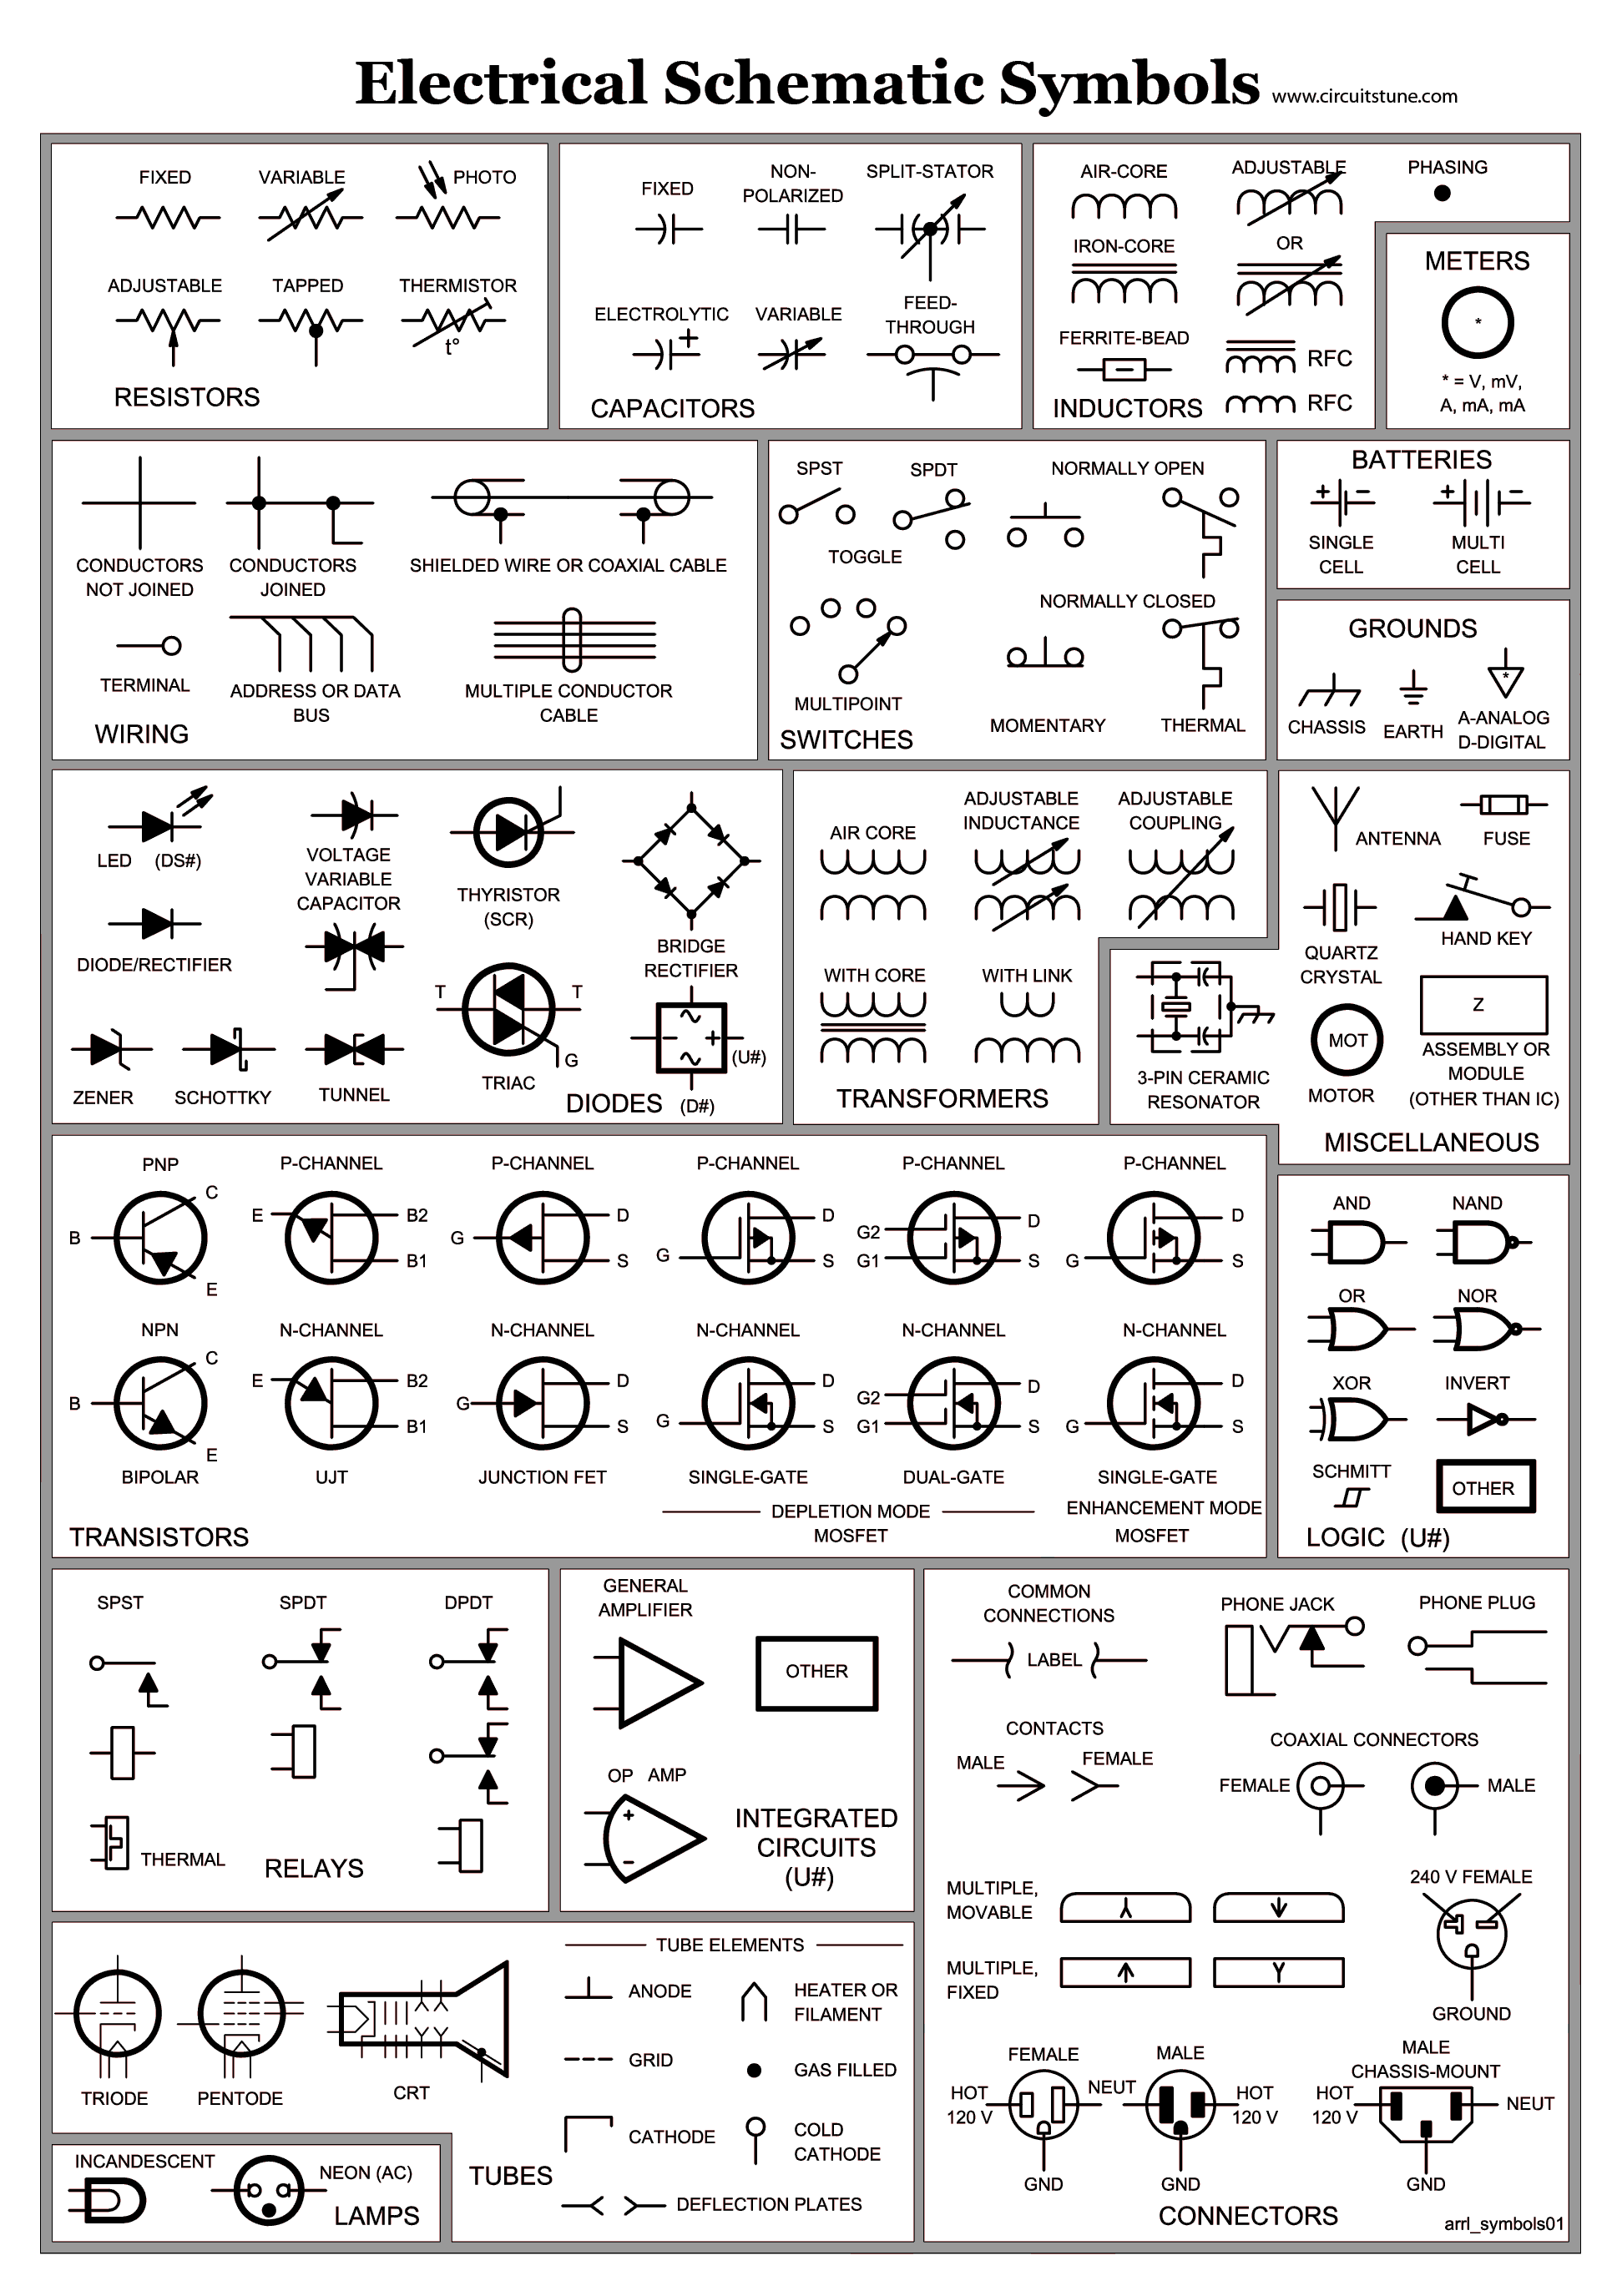 a65d176364692d2ebe913b58a654cfc3 electrical schematic symbols wire diagram symbols automotive ac wiring diagram symbols at crackthecode.co